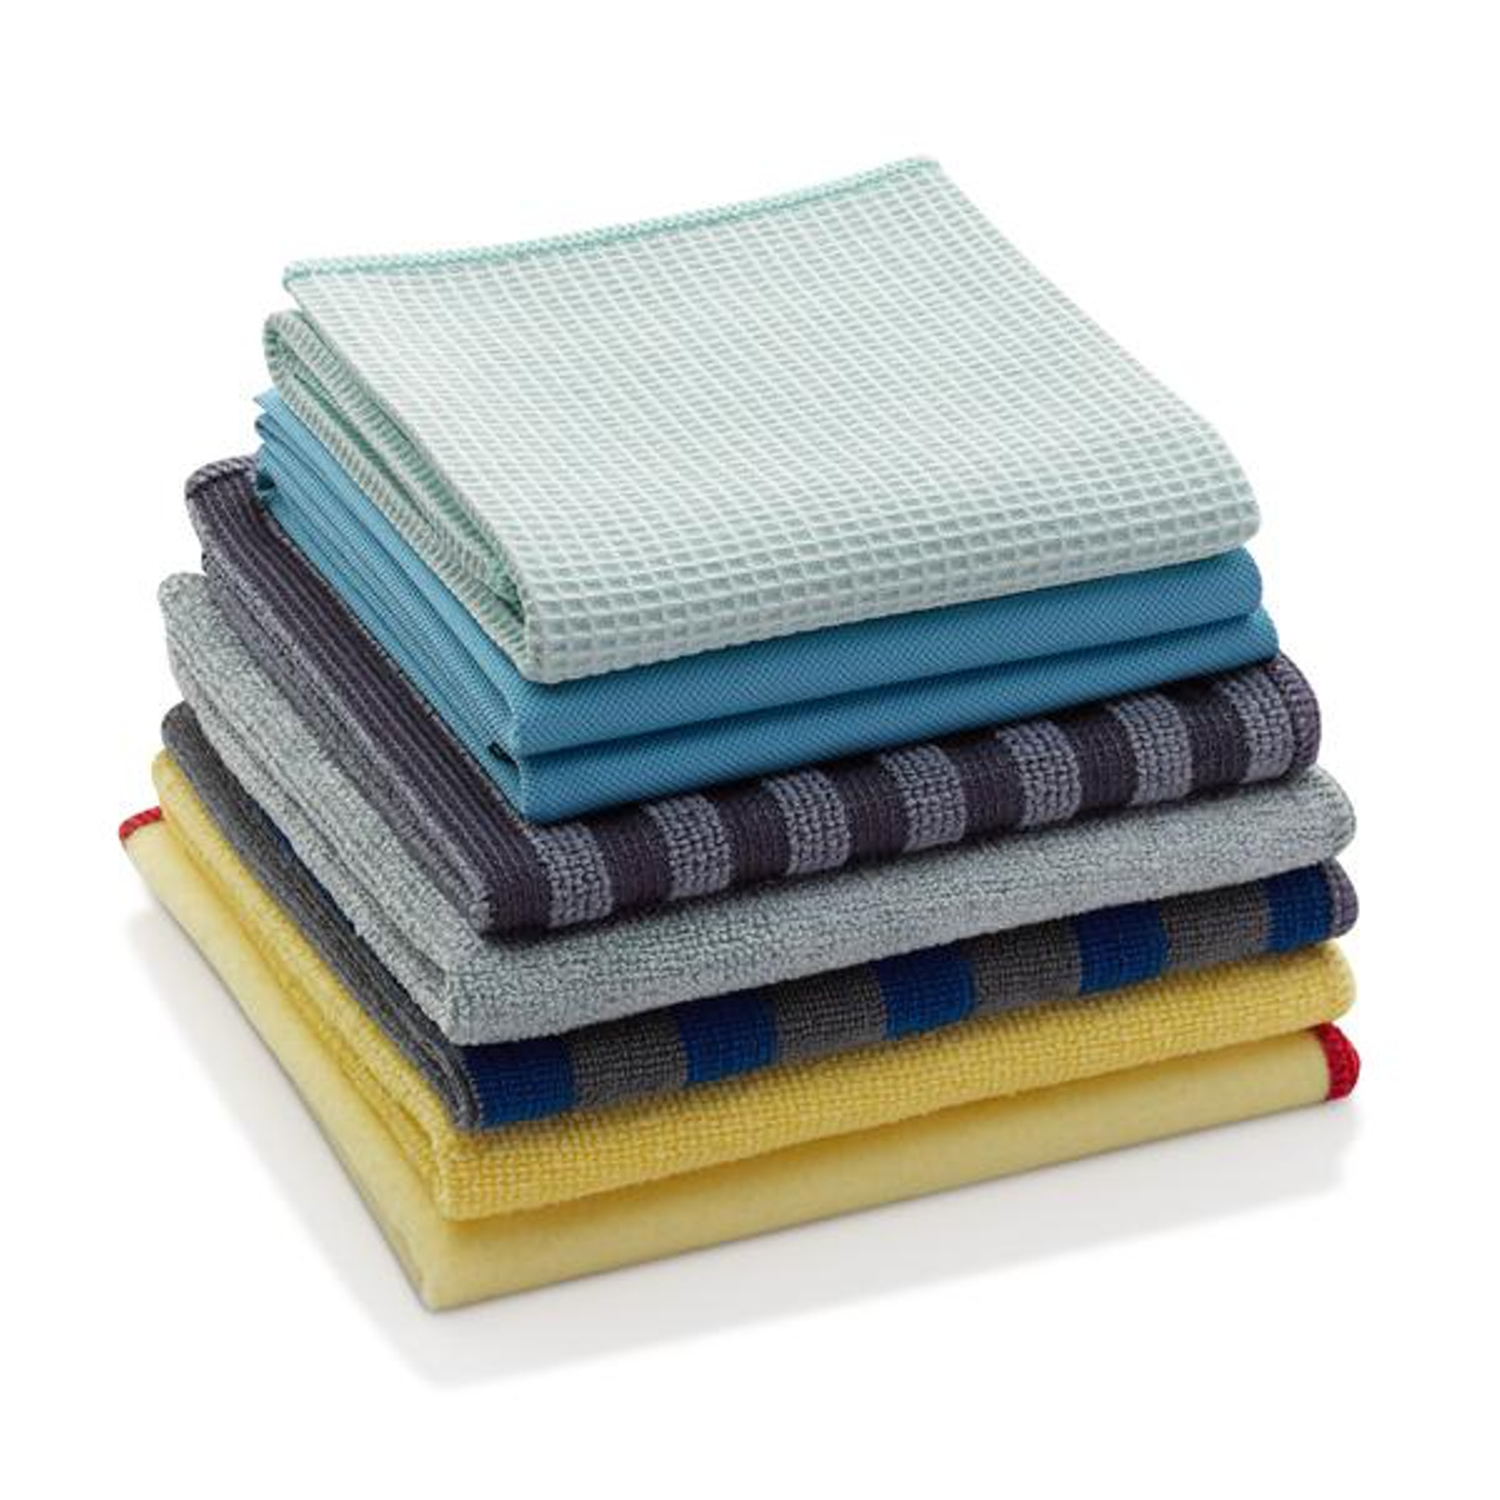 E-Cloth Home Cleaning Polyamide/Polyester Cleaning Cloth 8 pk - Ace ...